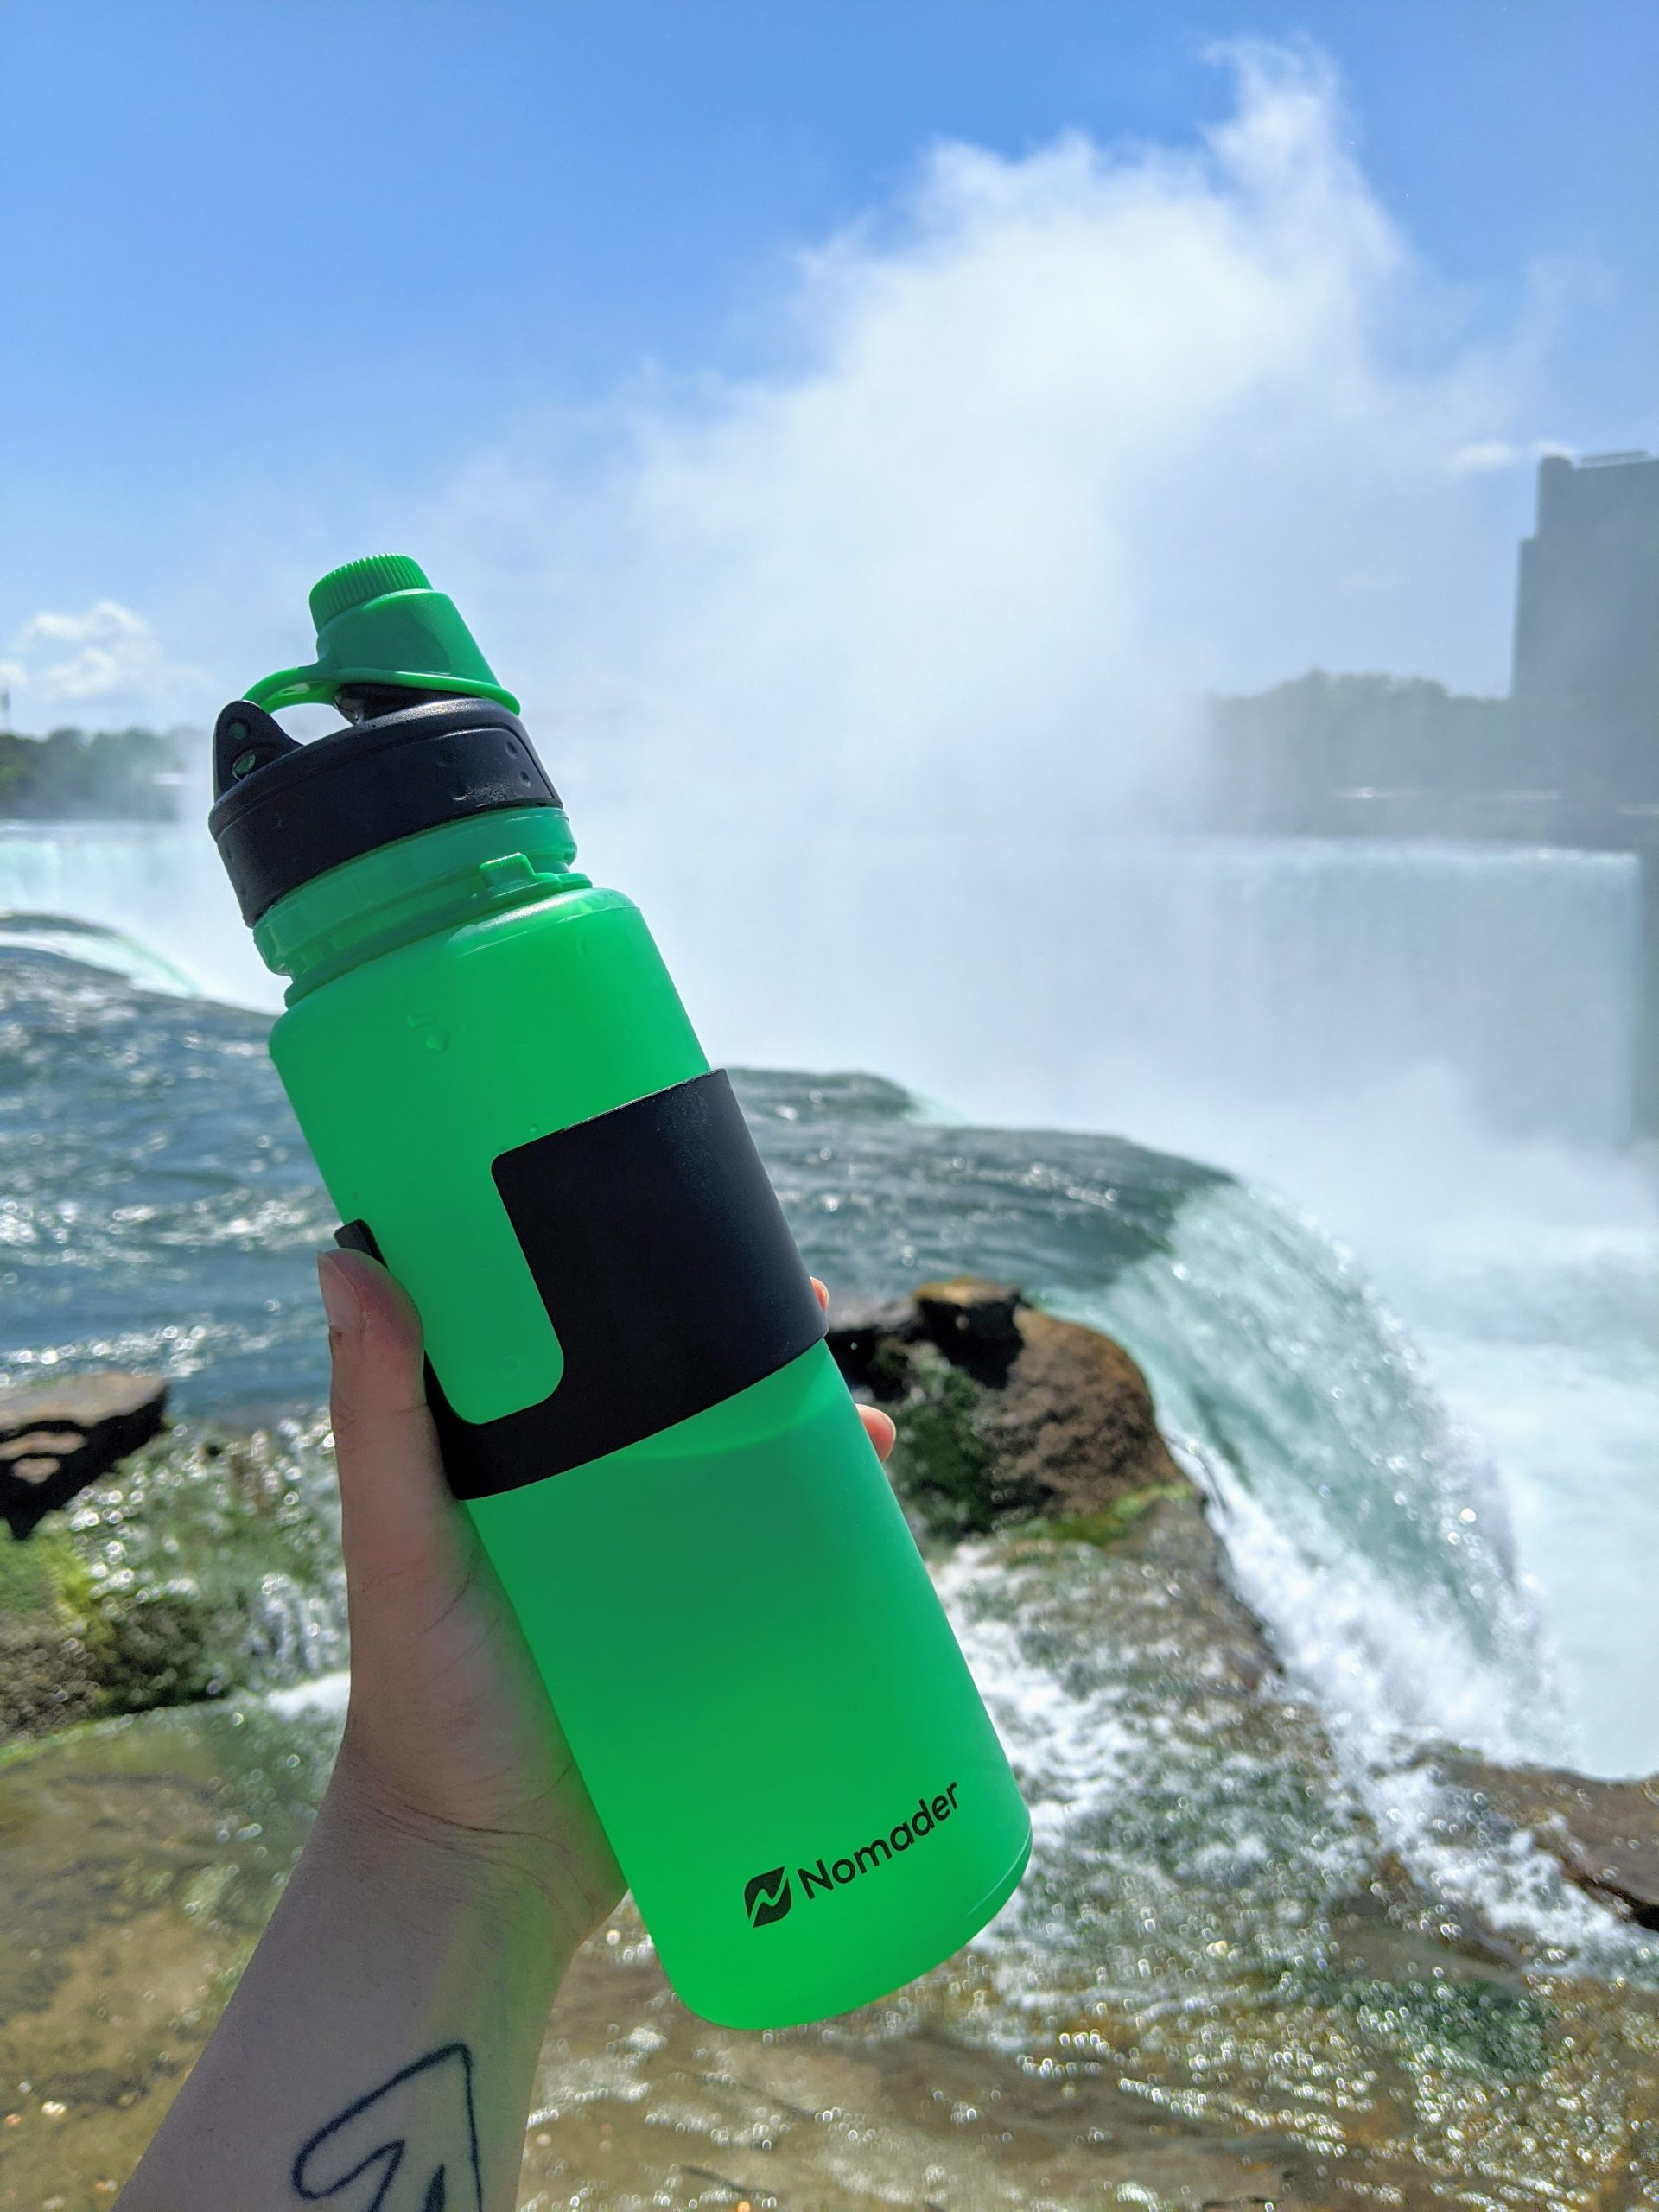 Nomader green bottle by niagara falls